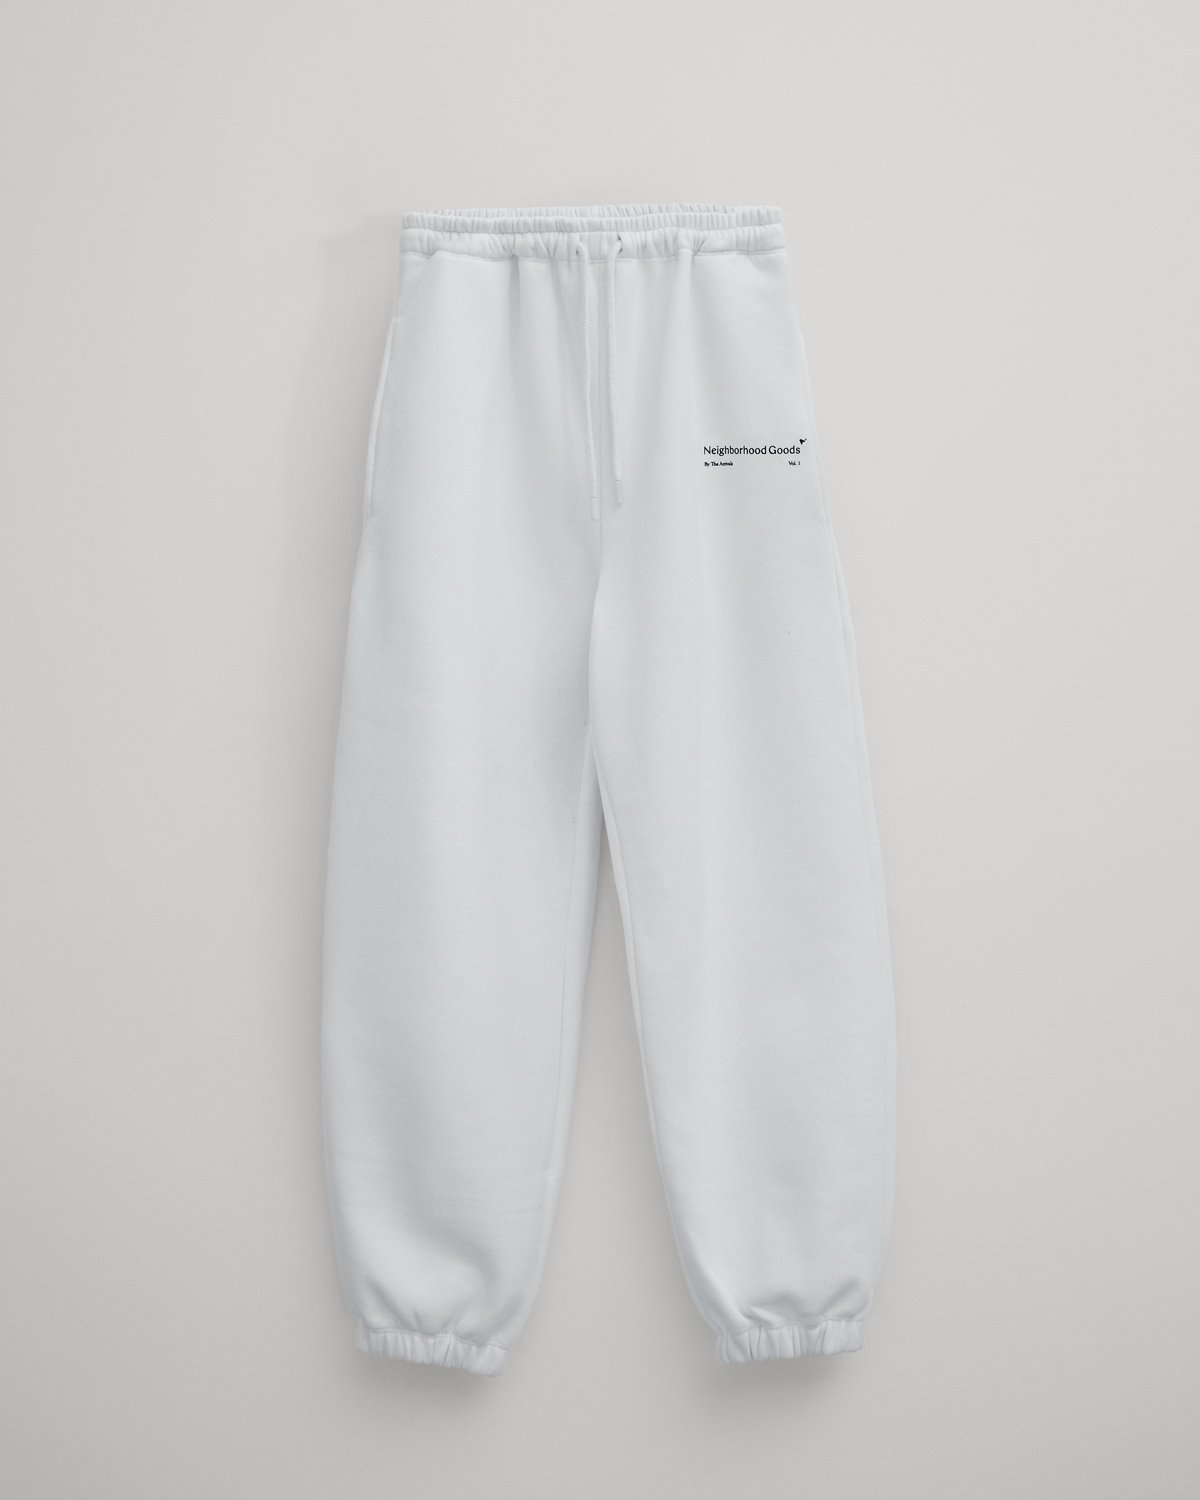 Neighborhood Goods The Arrivals Co-Ed Track Sweats / Neighborhood Goods